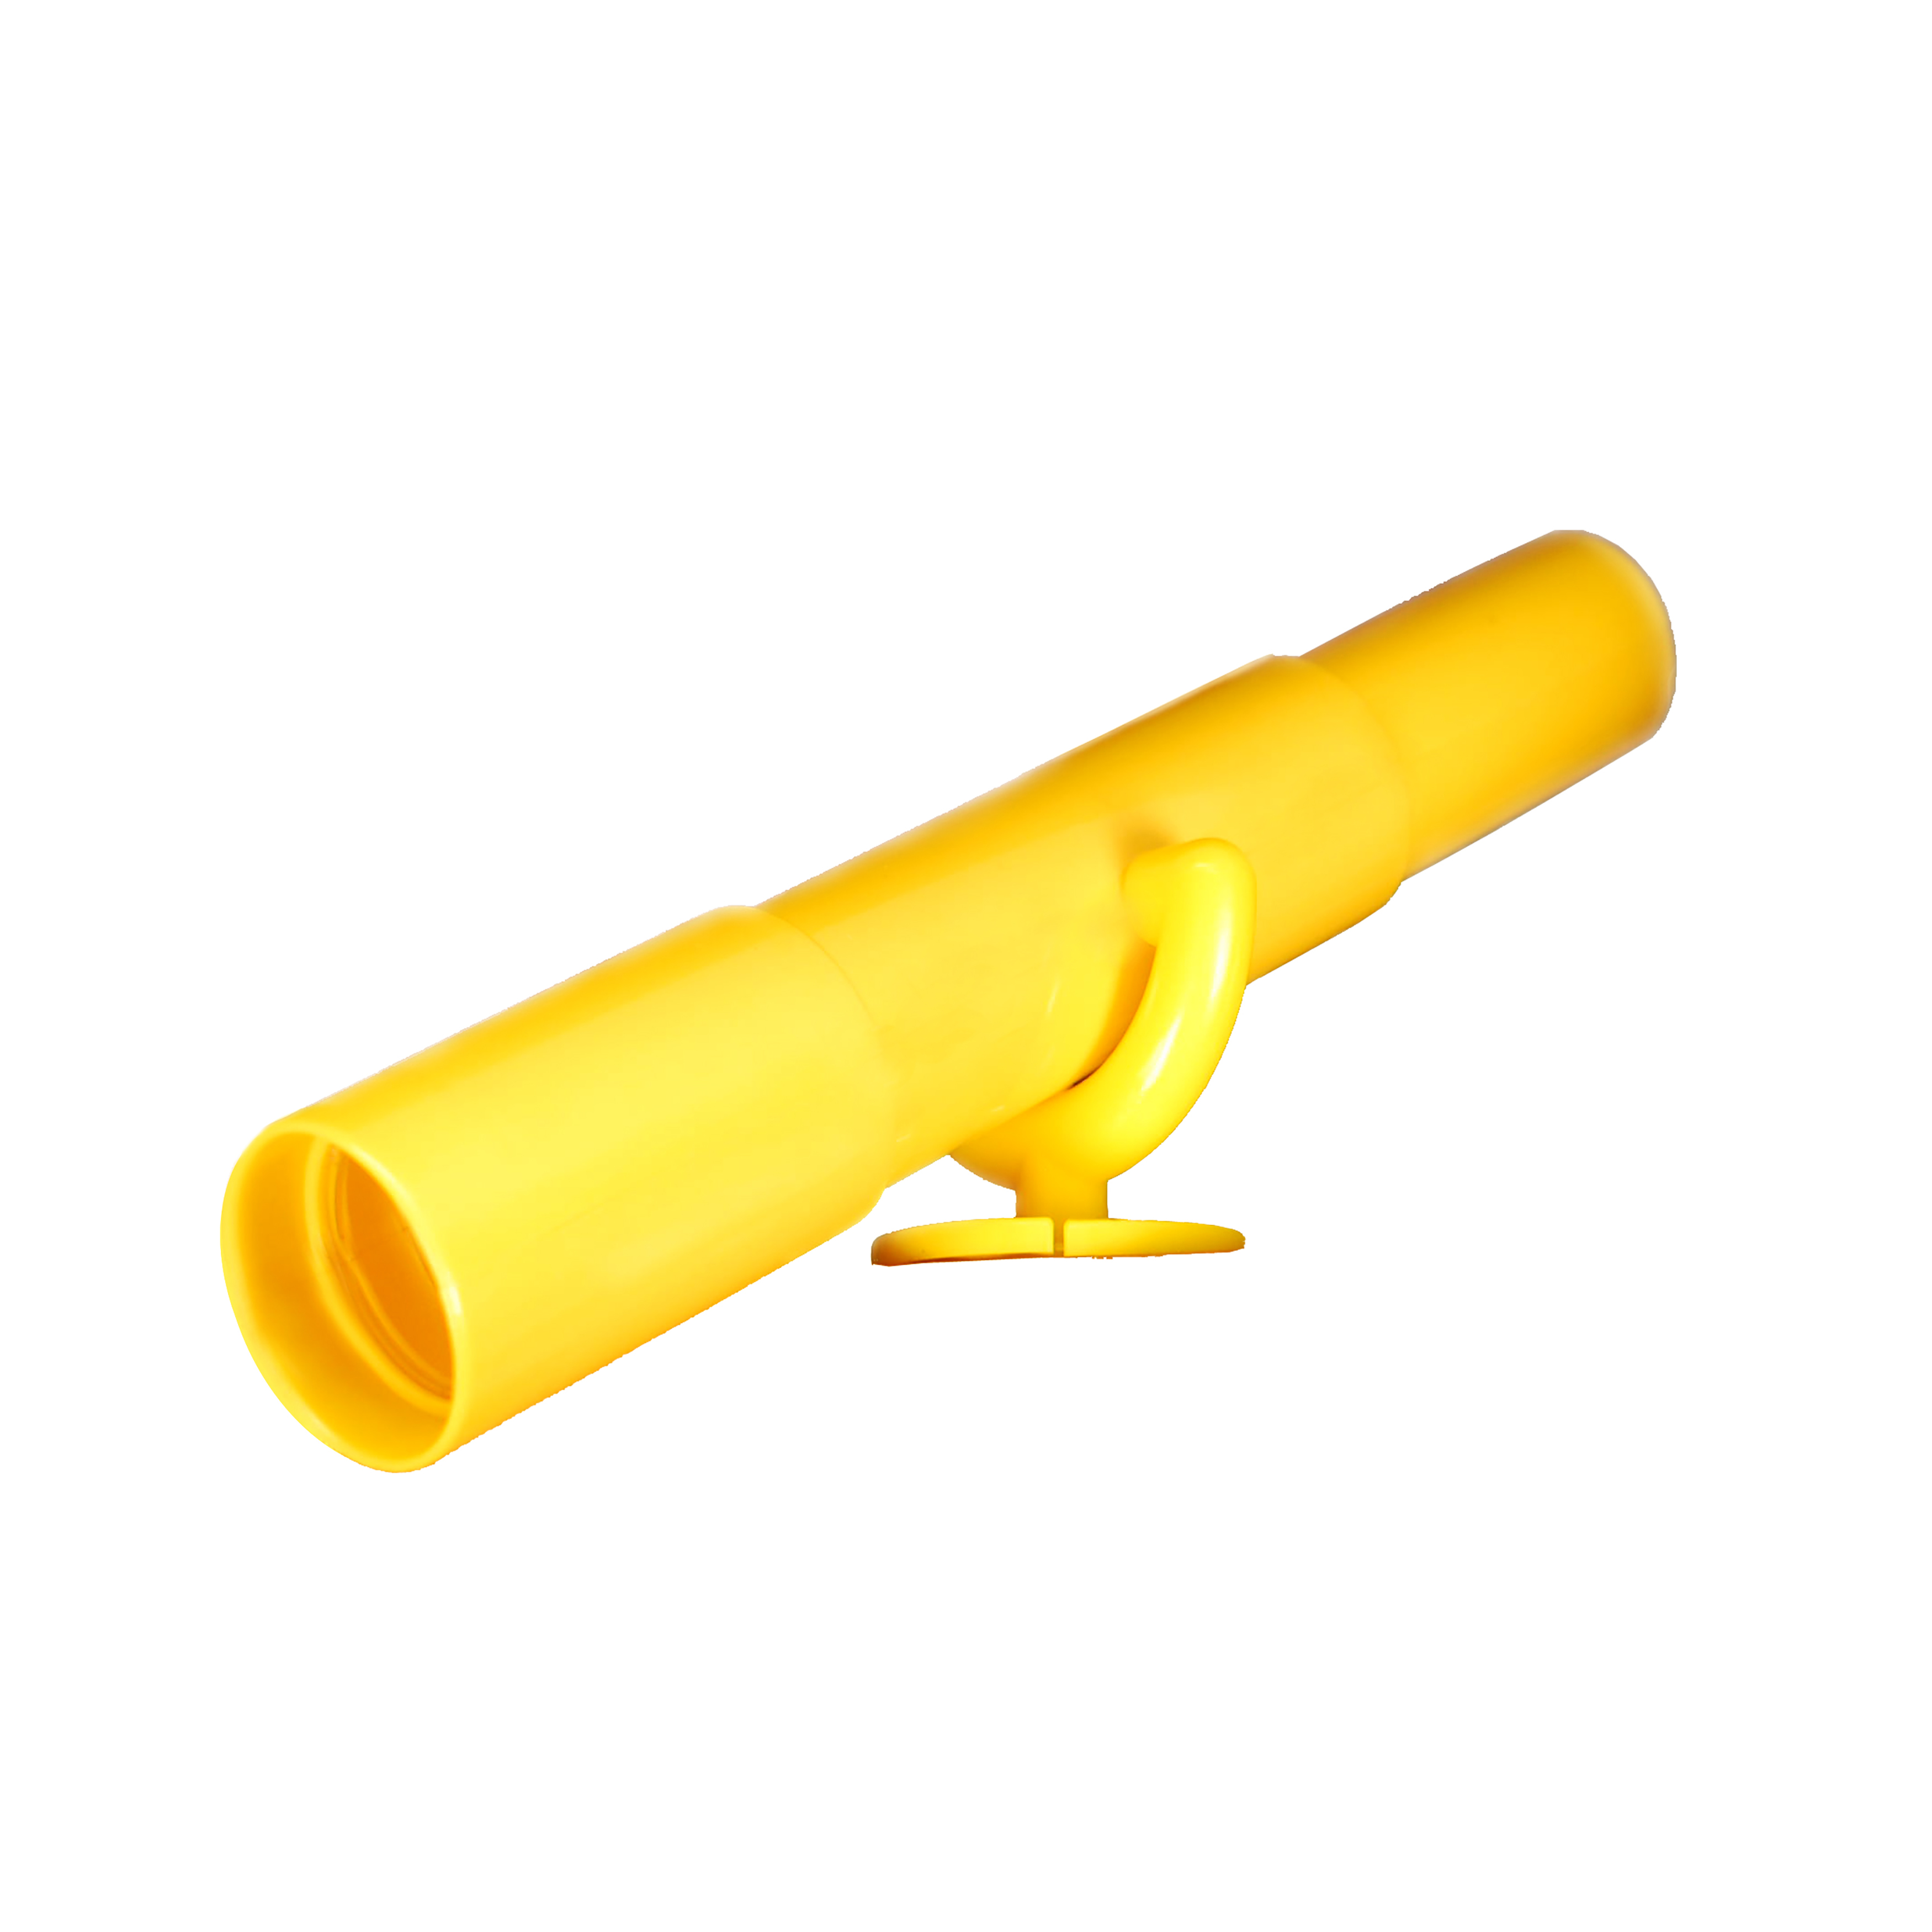 Gorilla Playsets Toy Telescope with Mount and Hardware, Yellow